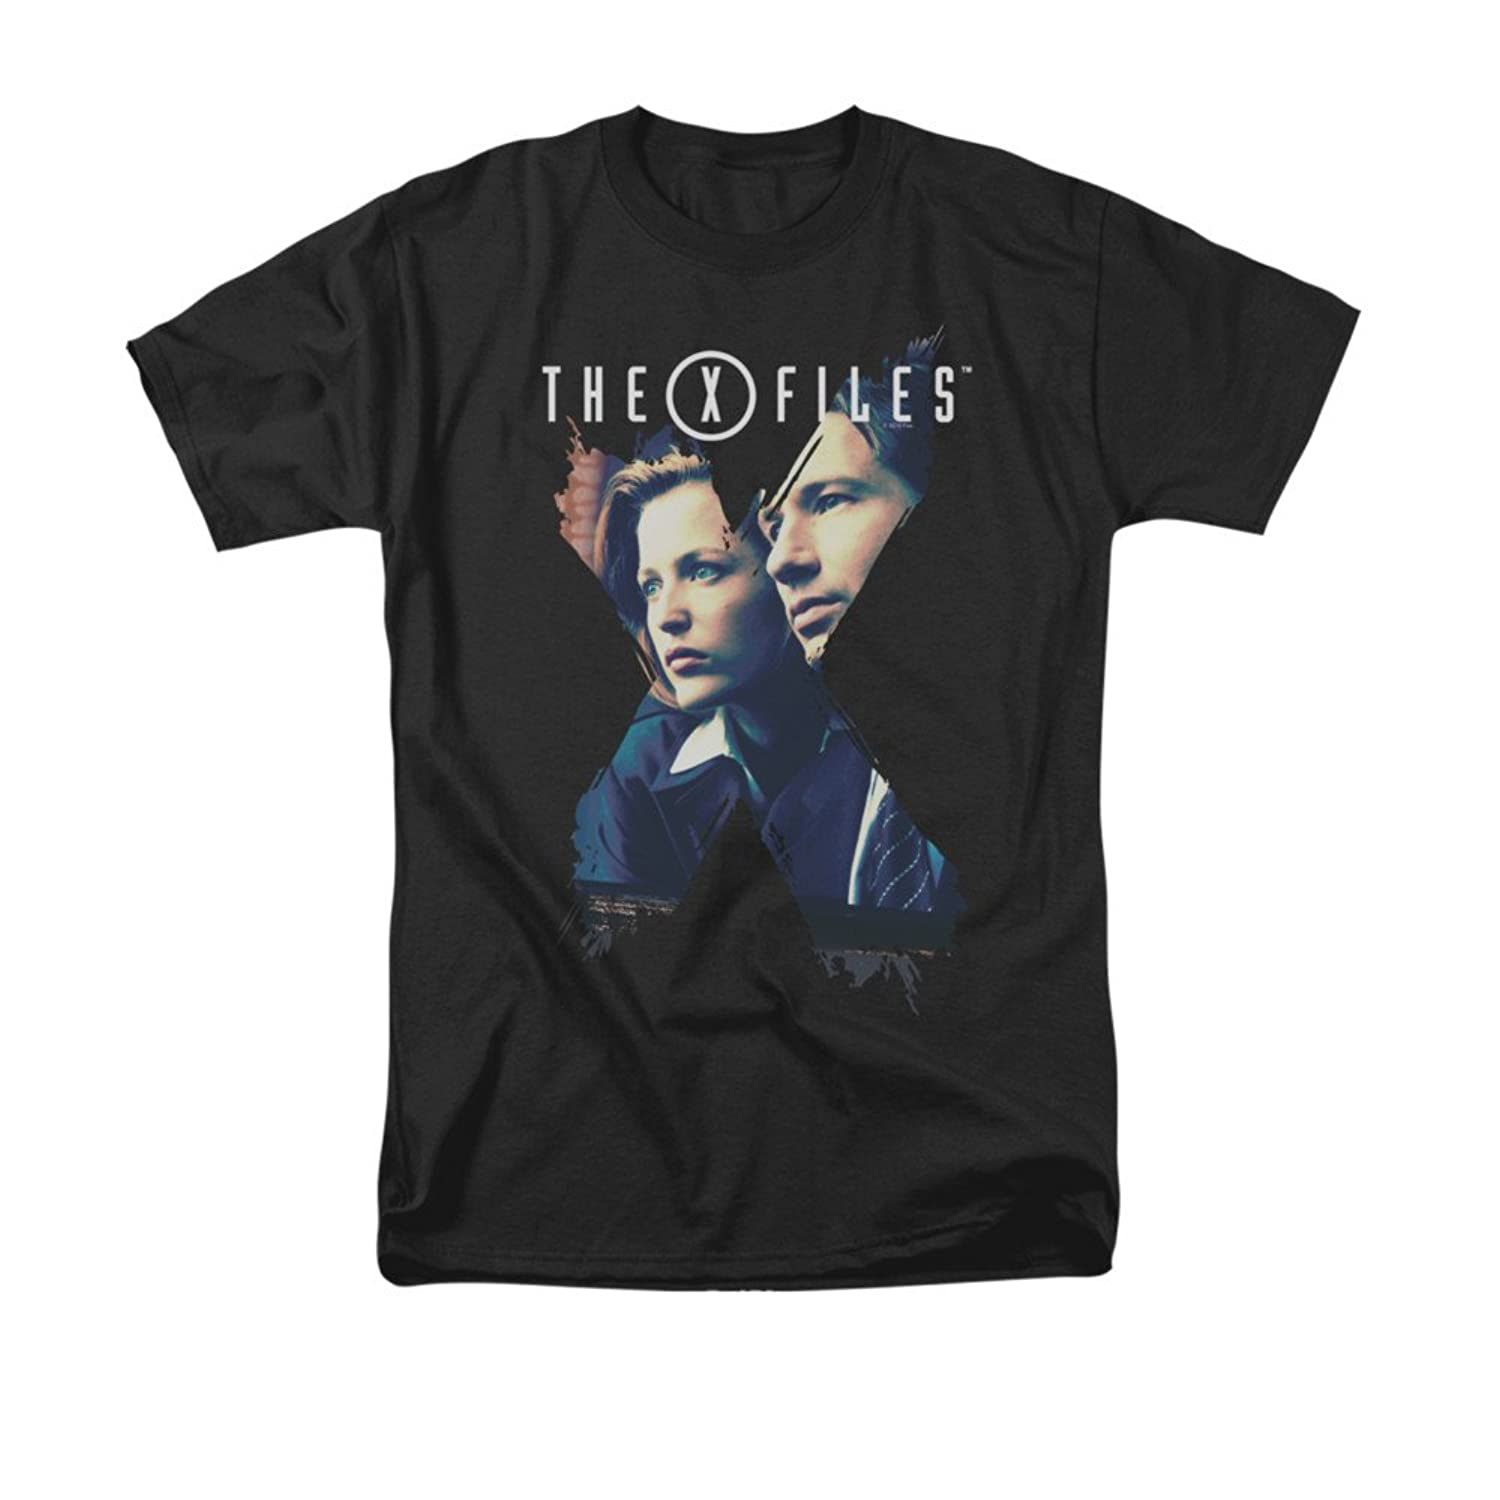 X-Files Horror Sci-Fi Thriller TV Series Mulder&Scully X Agents Adult T-Shirt